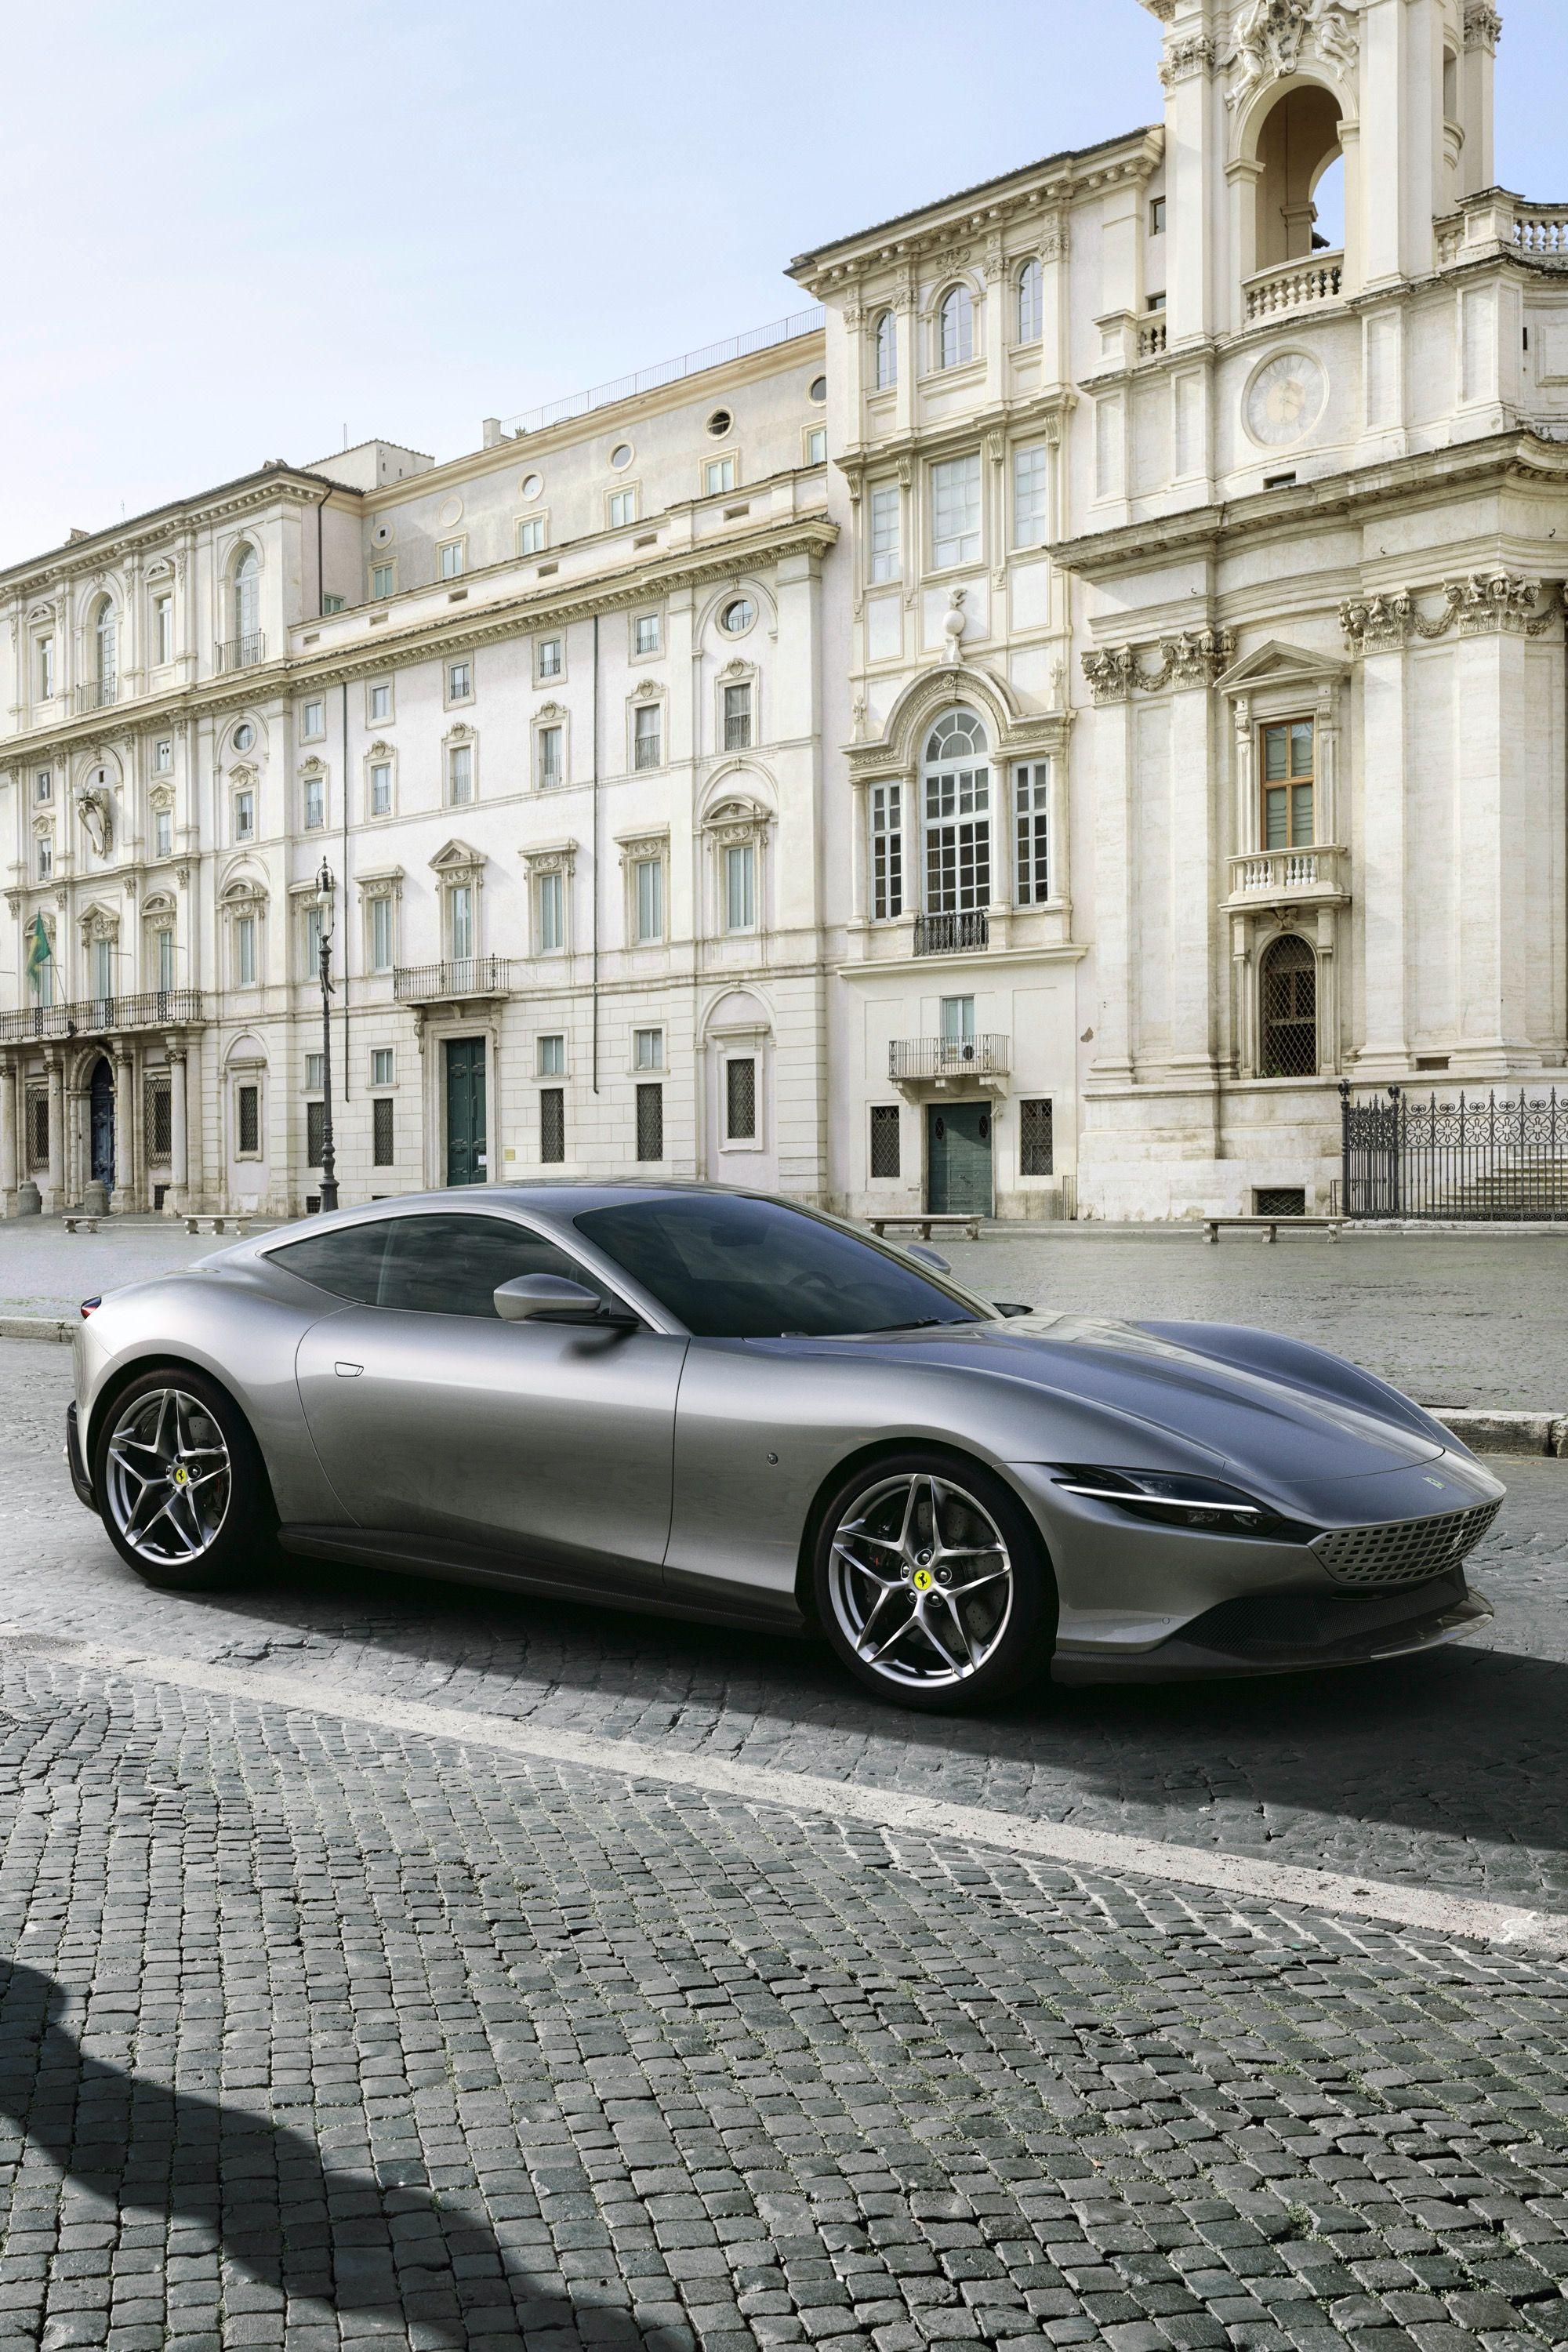 2020 Ferrari Roma Supercar In 2020 Super Cars Ferrari Luxury Cars